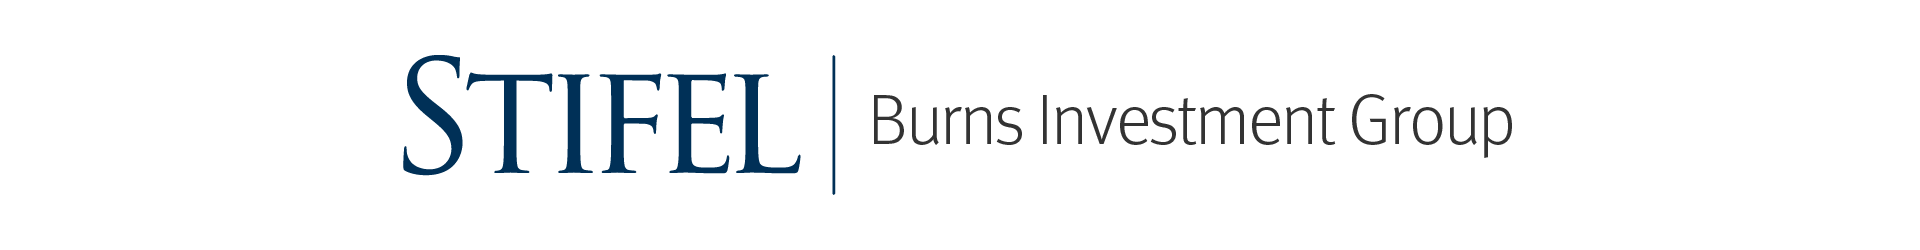 Burns Investment Group